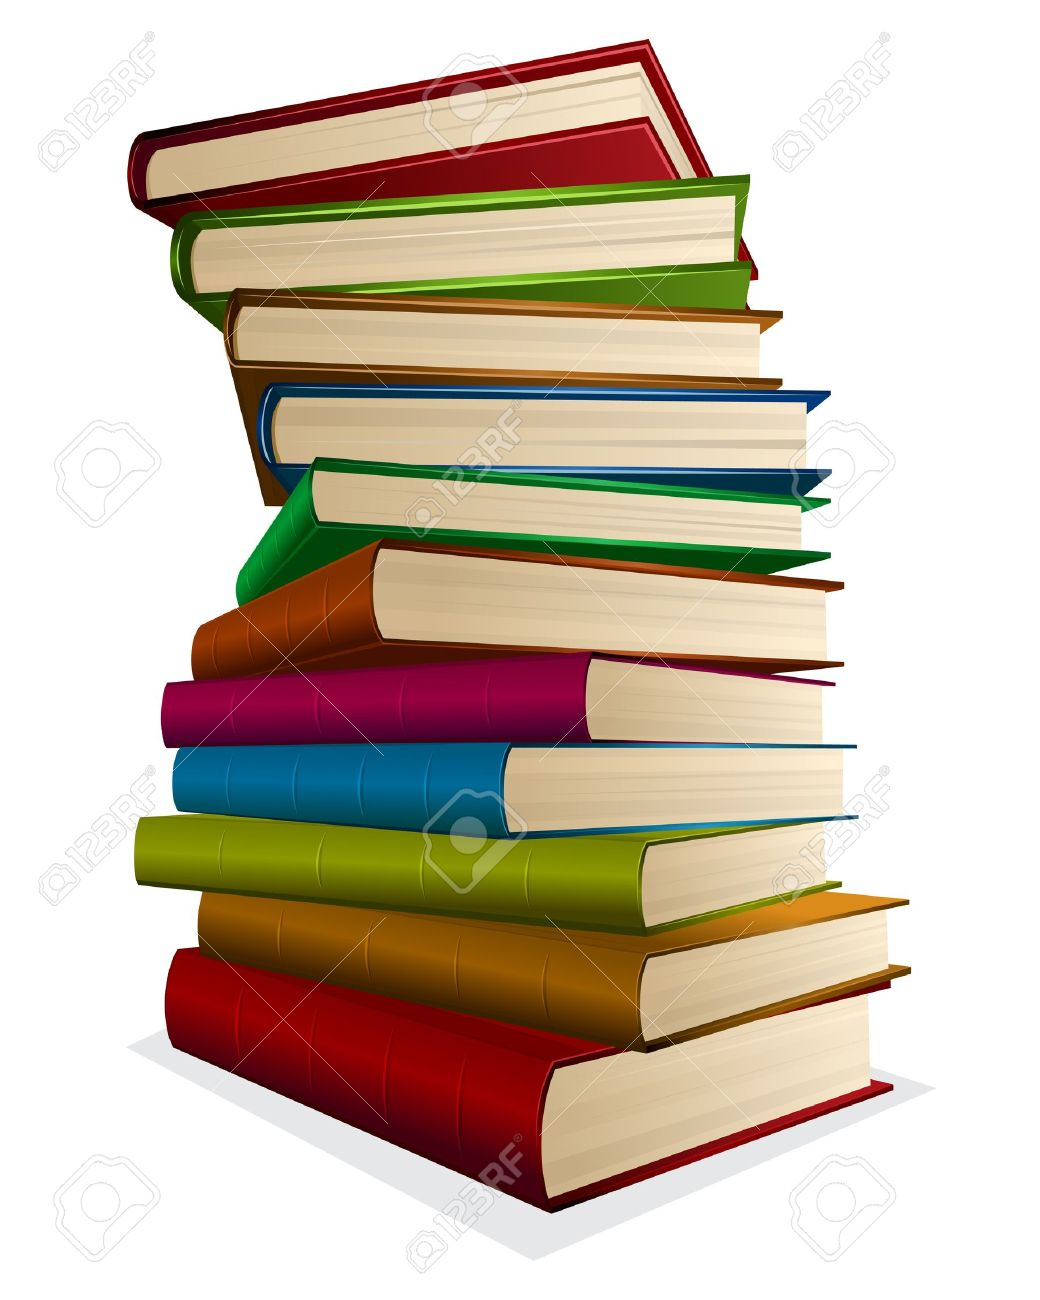 1040x1300 Illustration Pile Of Books Isolated On White Royalty Free Cliparts